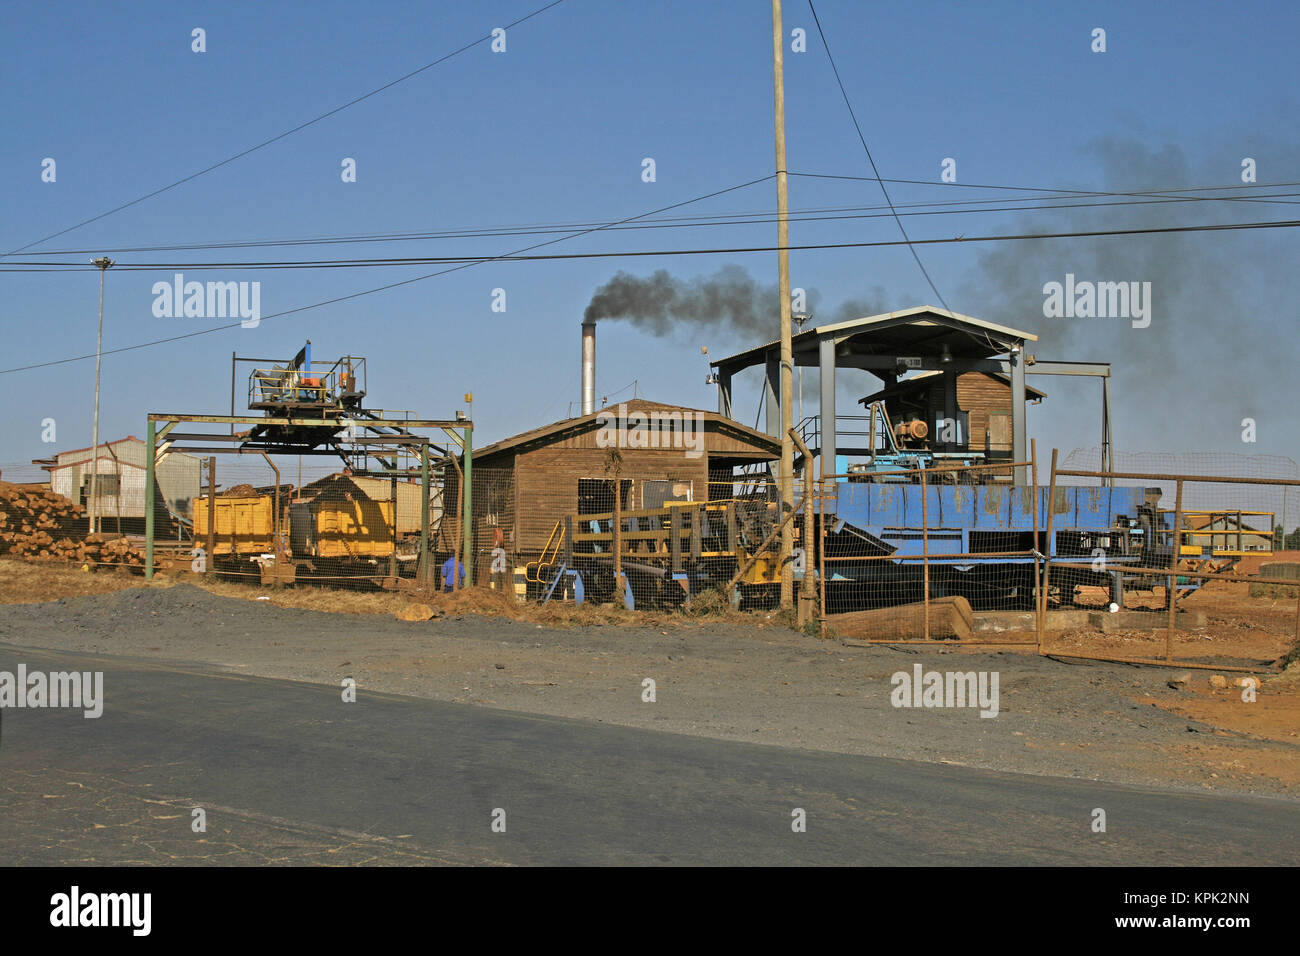 Timber factory, Kingdom of Swaziland. - Stock Image